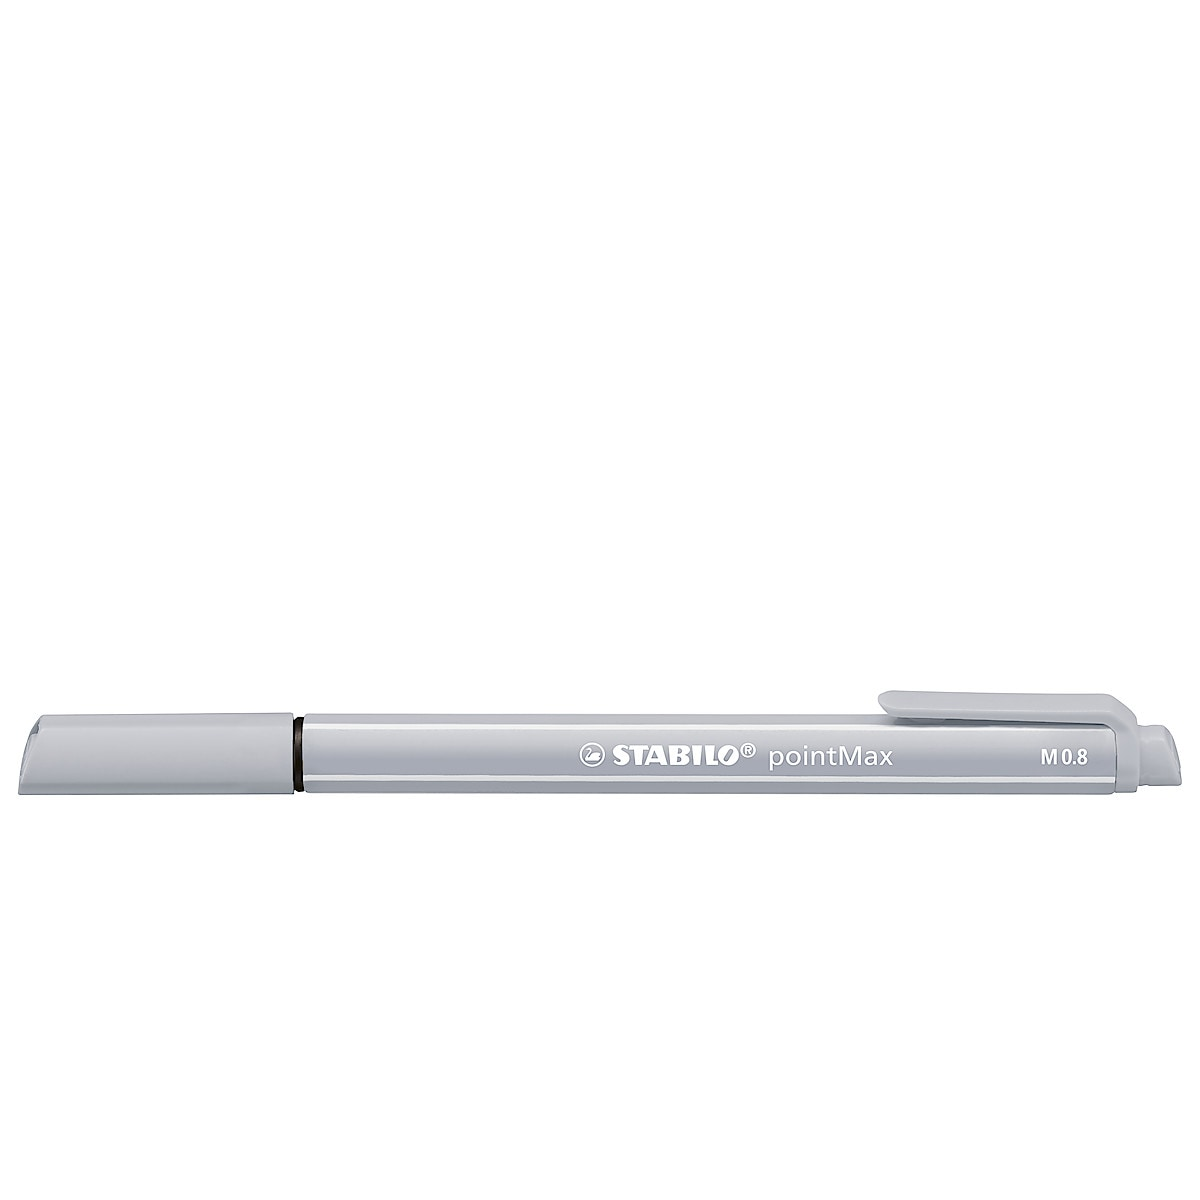 Pennor Fineliner Stabilo pointMax pastell 4-pack